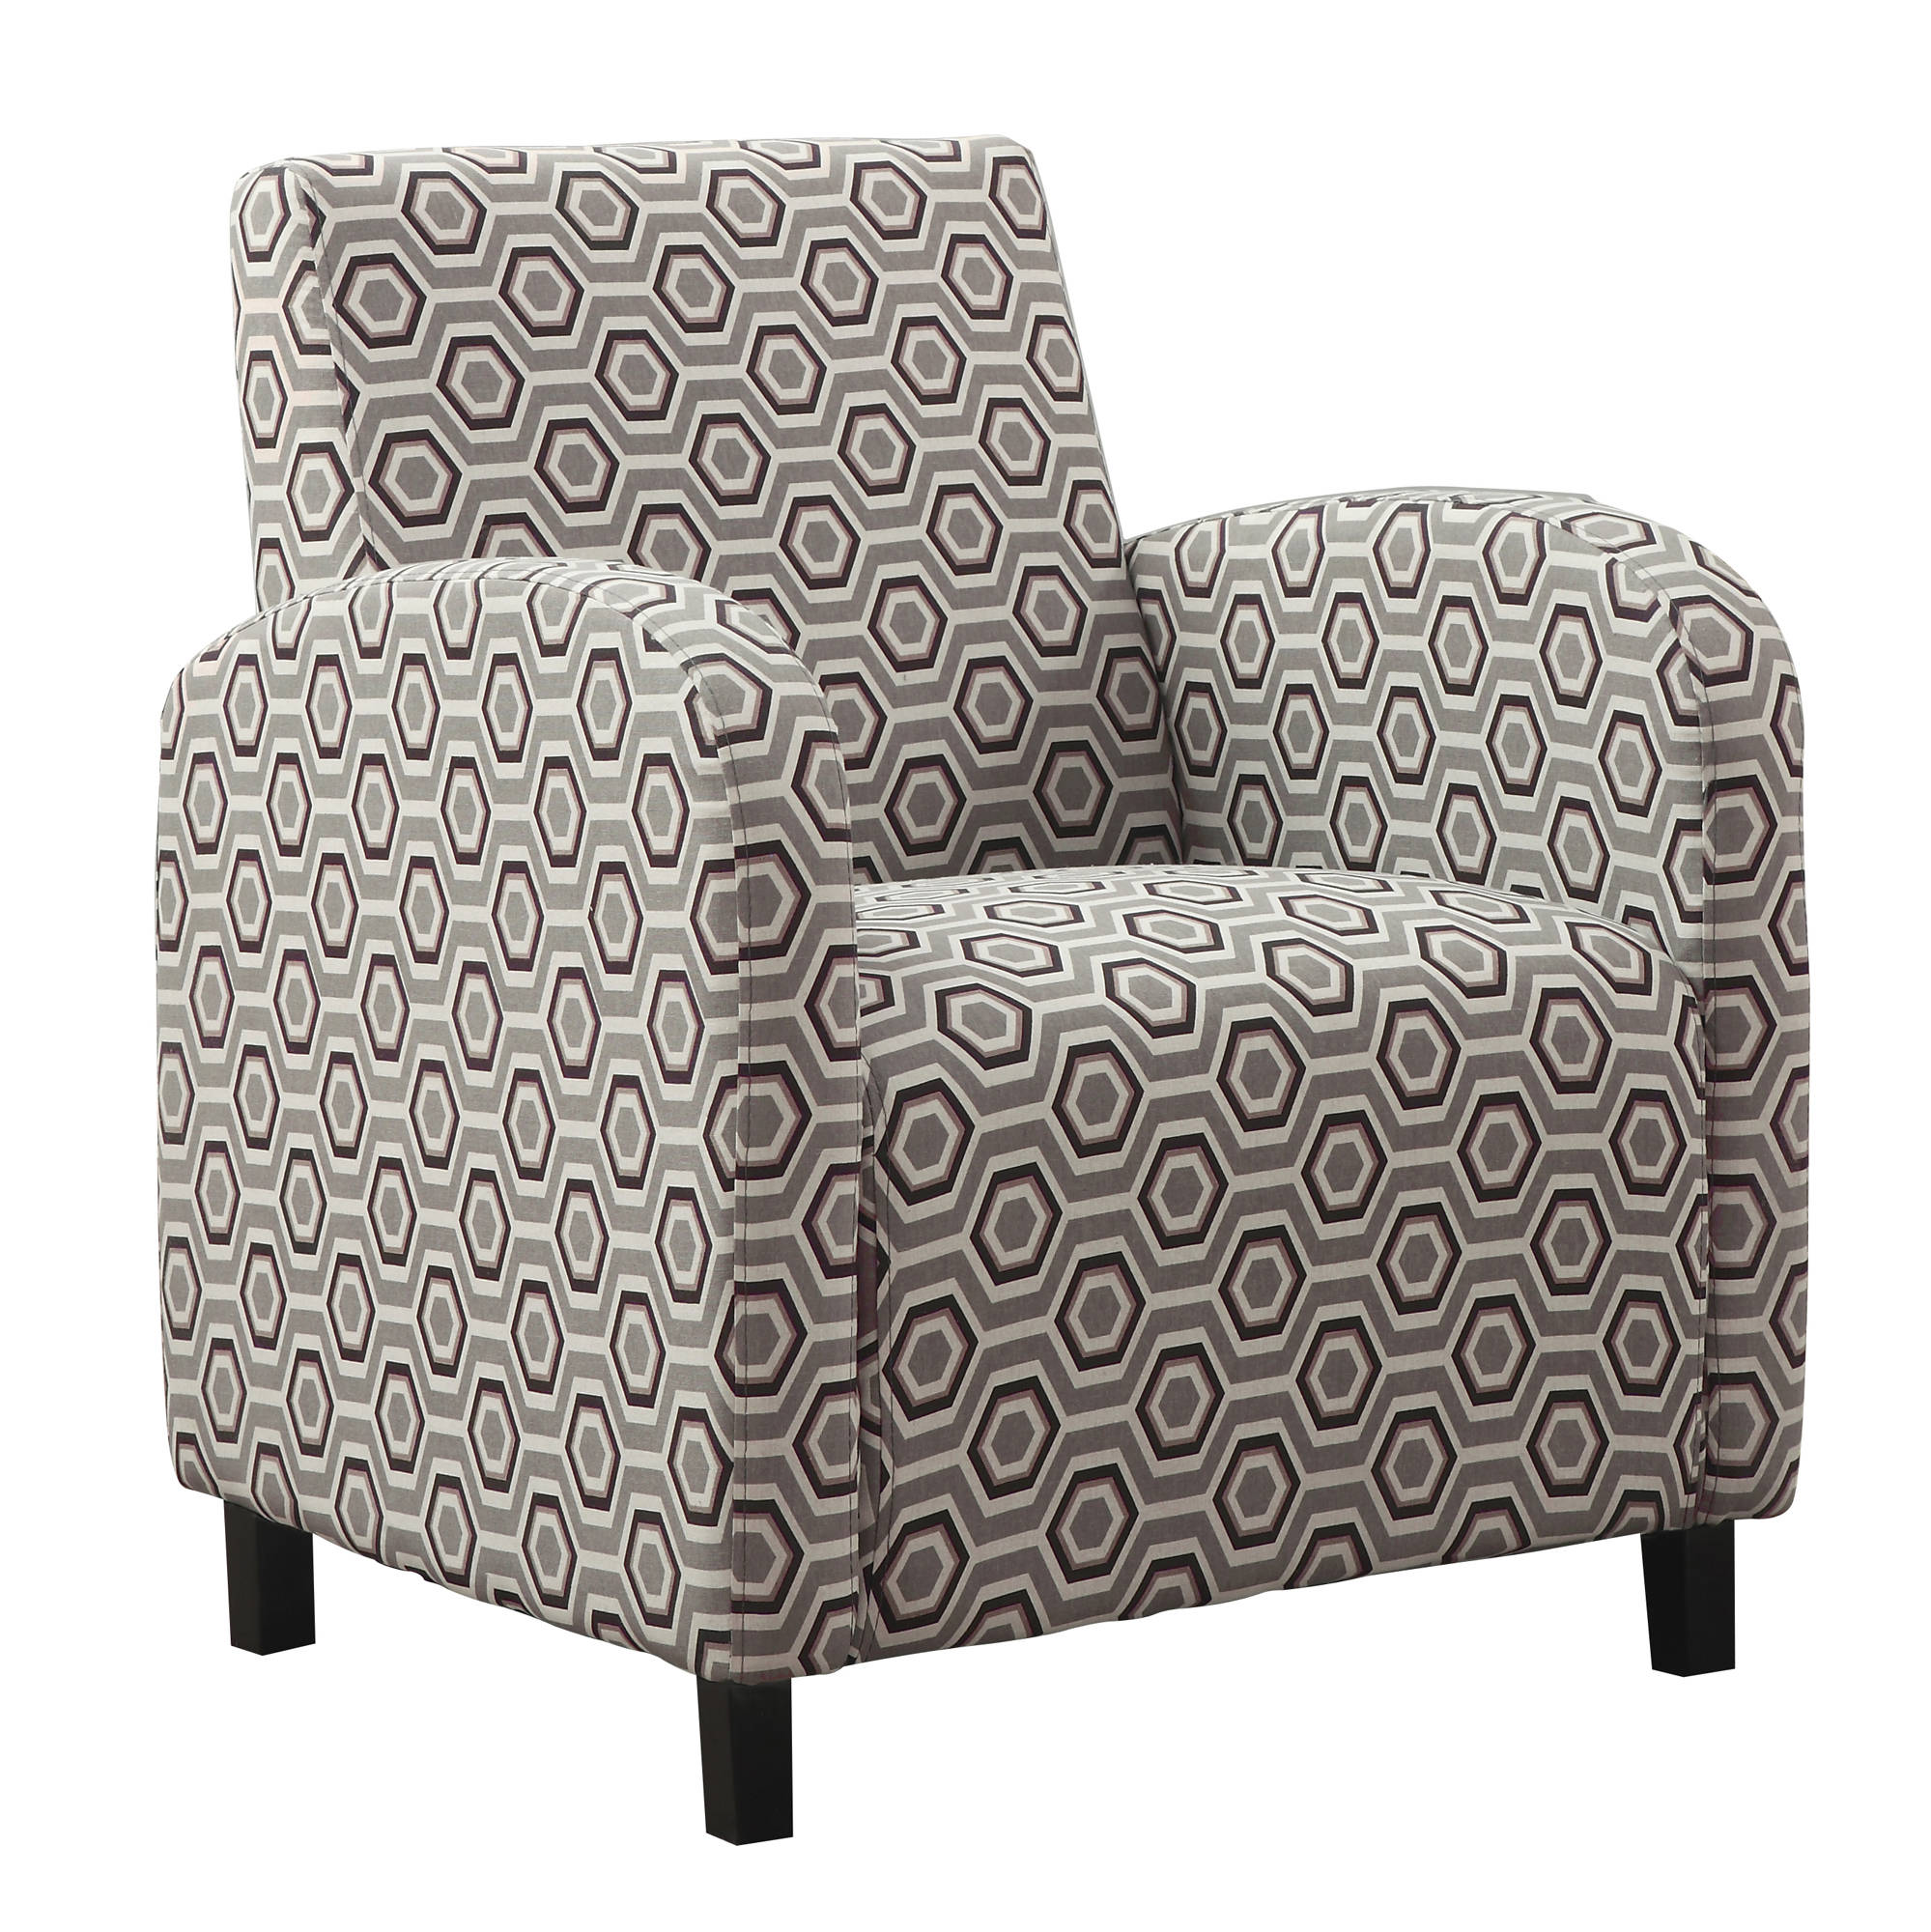 Admirable Monarch Specialties Brown Fabric Accent Chair Gmtry Best Dining Table And Chair Ideas Images Gmtryco